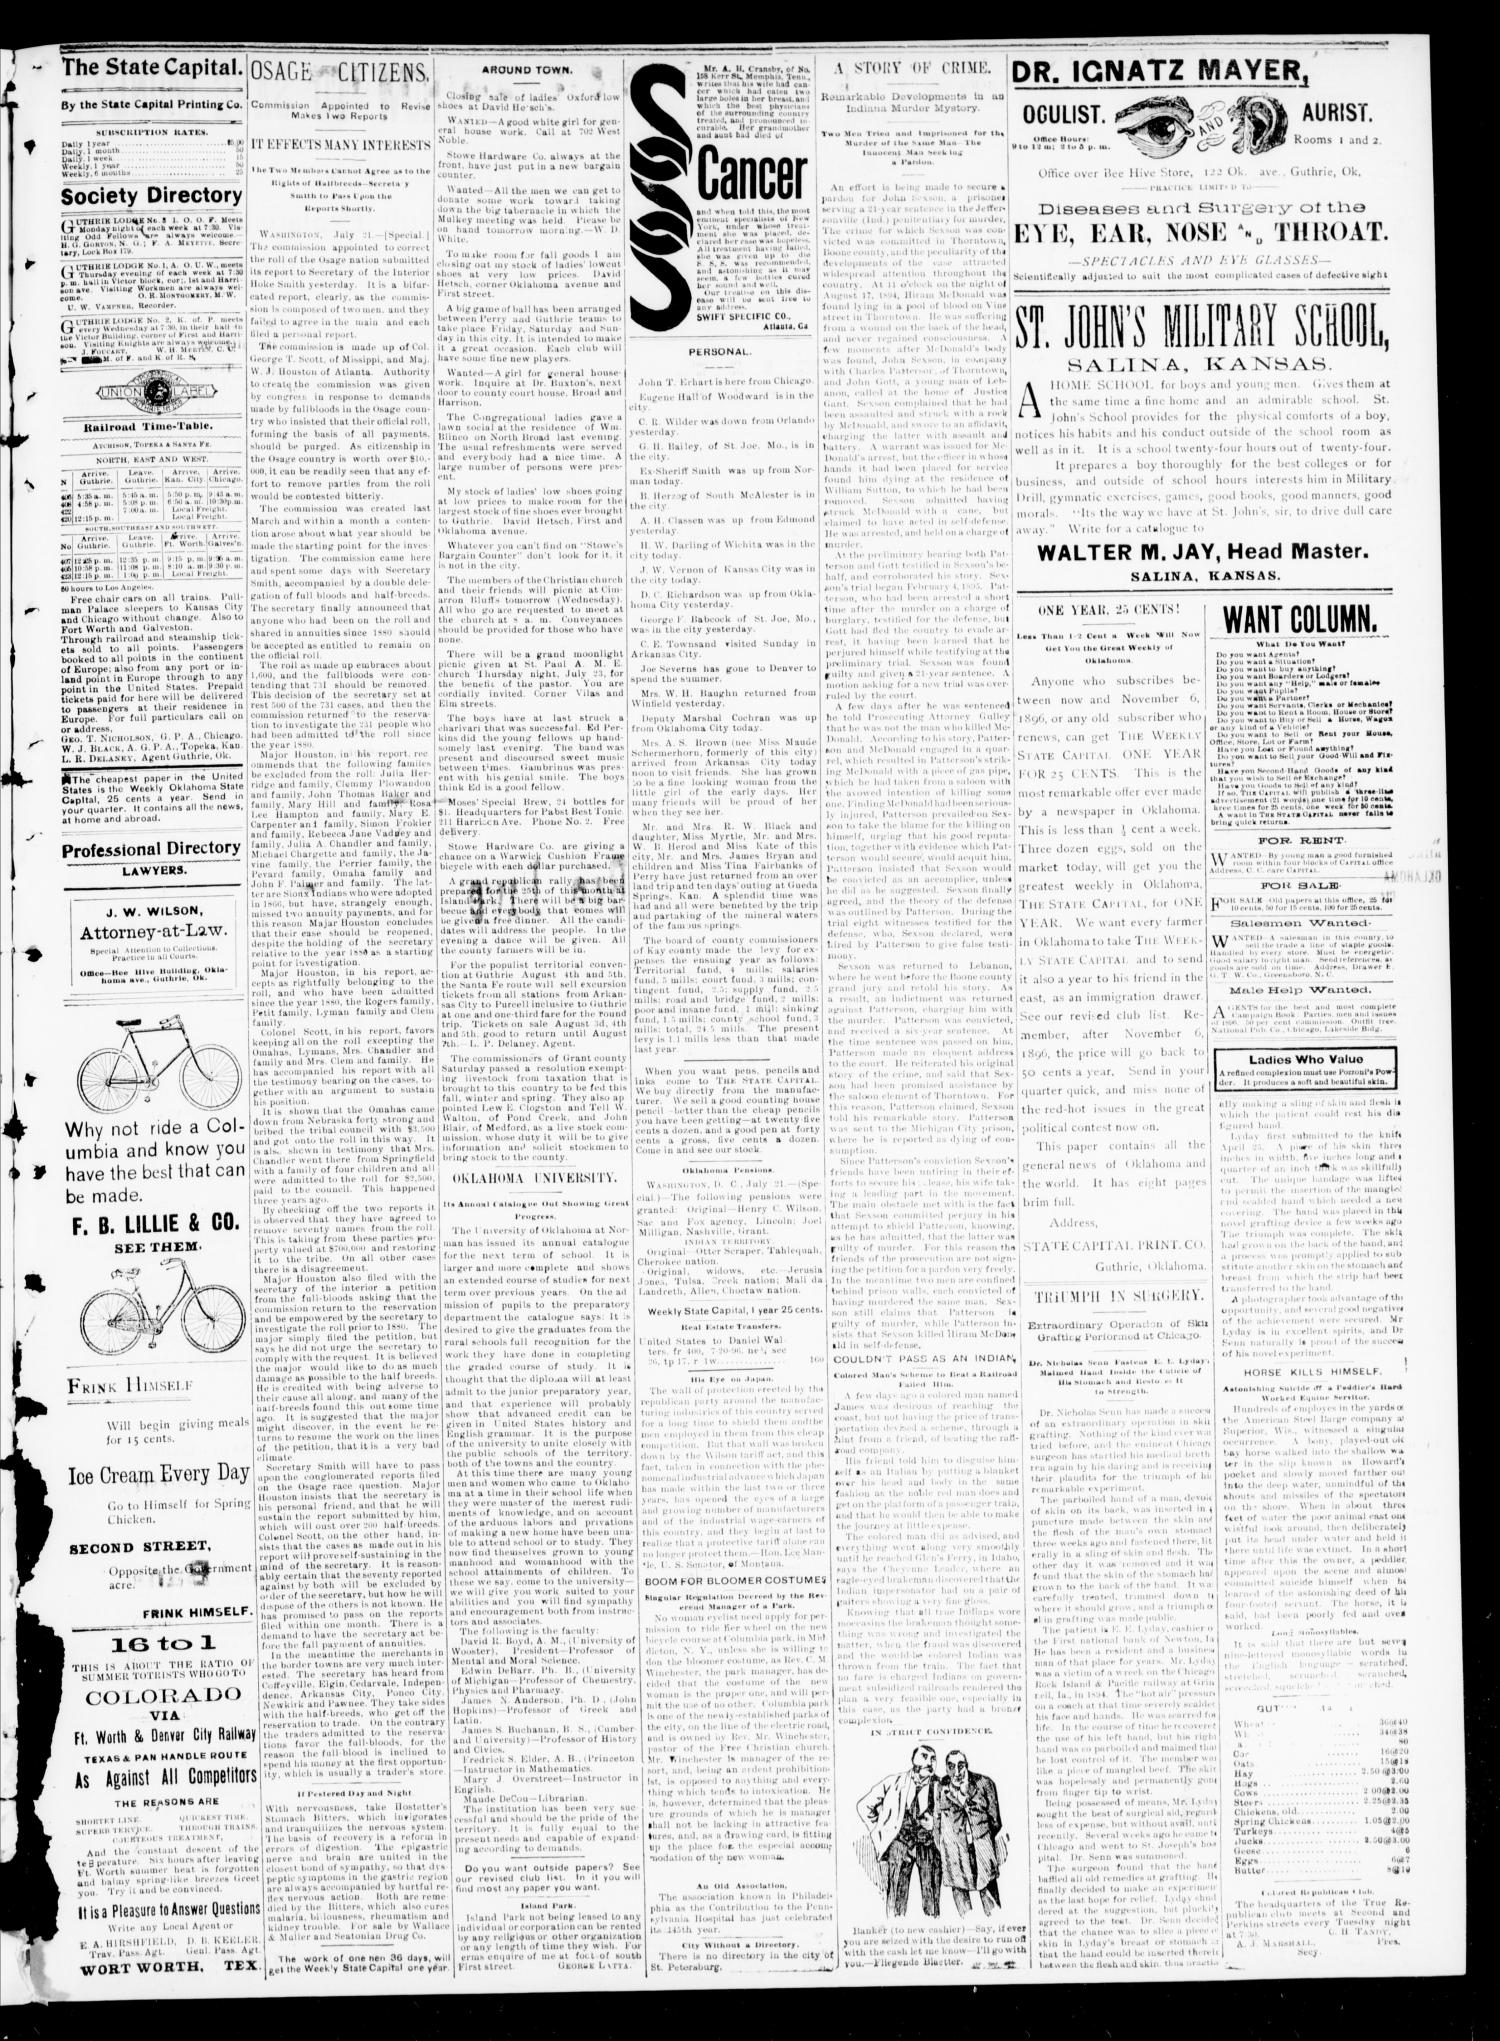 The Daily Oklahoma State Capital. (Guthrie, Okla.), Vol. 8, No. 66, Ed. 1 Tuesday, July 21, 1896                                                                                                      [Sequence #]: 3 of 4